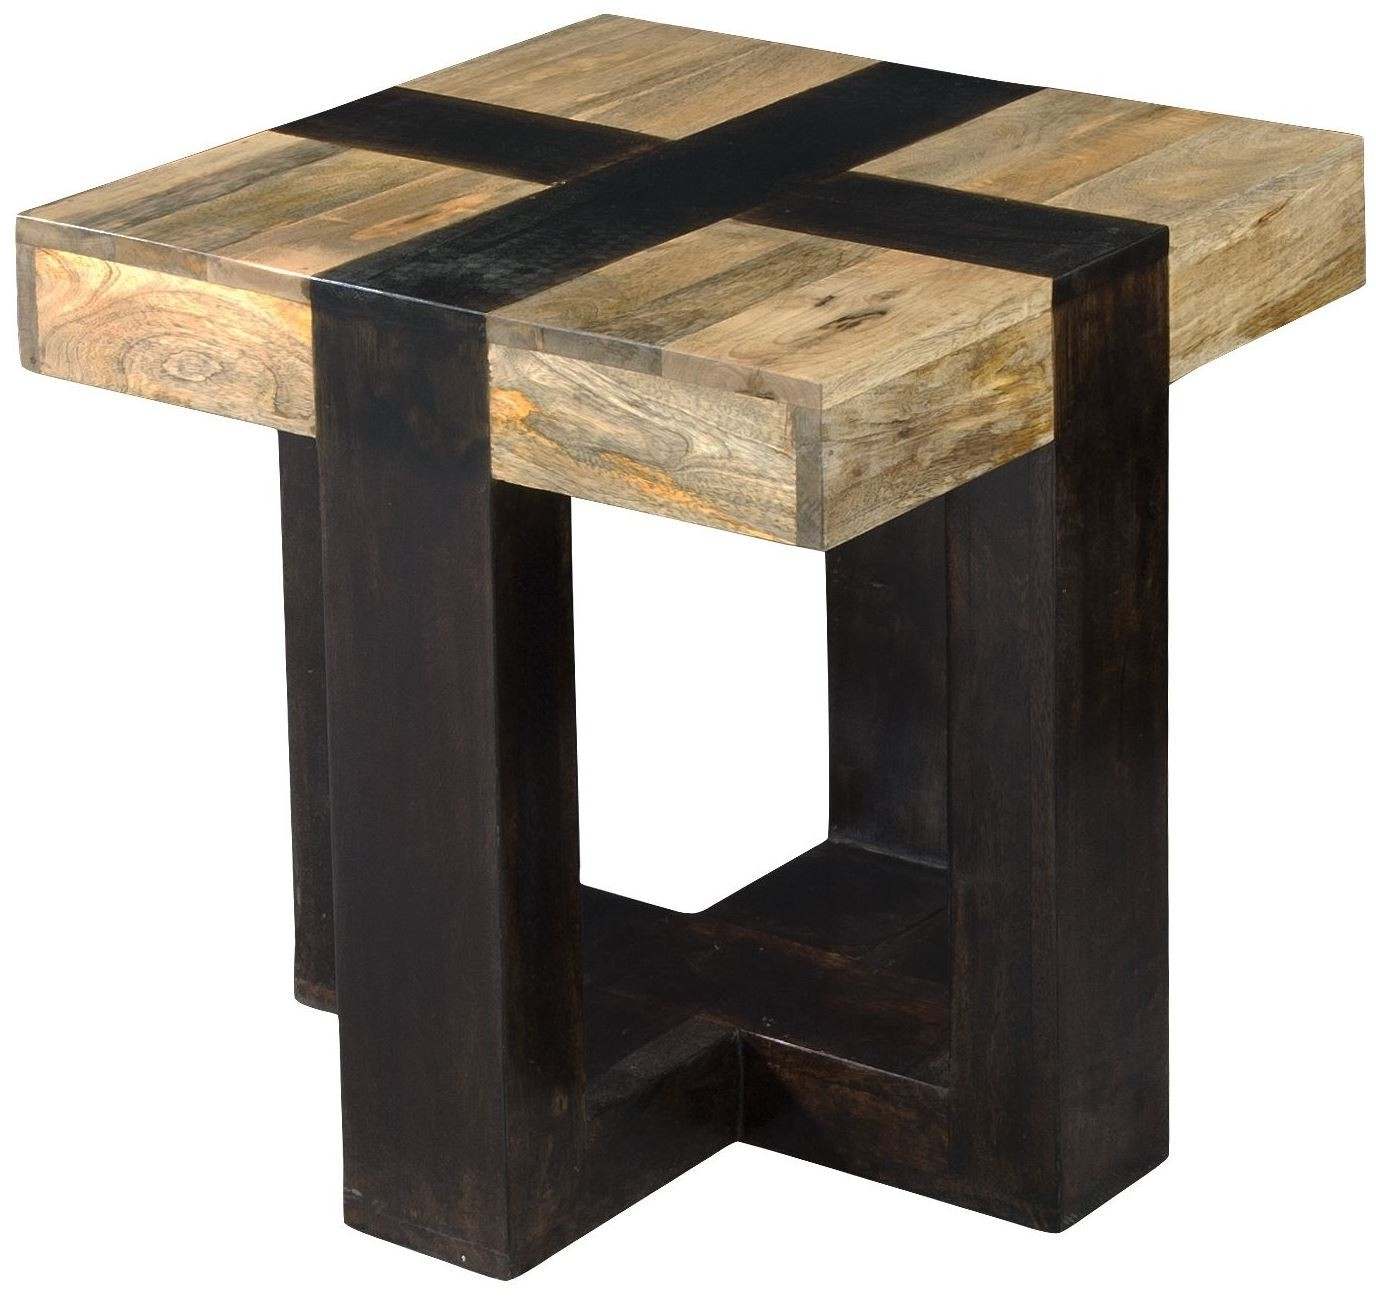 Tahoe Natural Mang End Table From Coast To Coast (75313) (View 18 of 20)